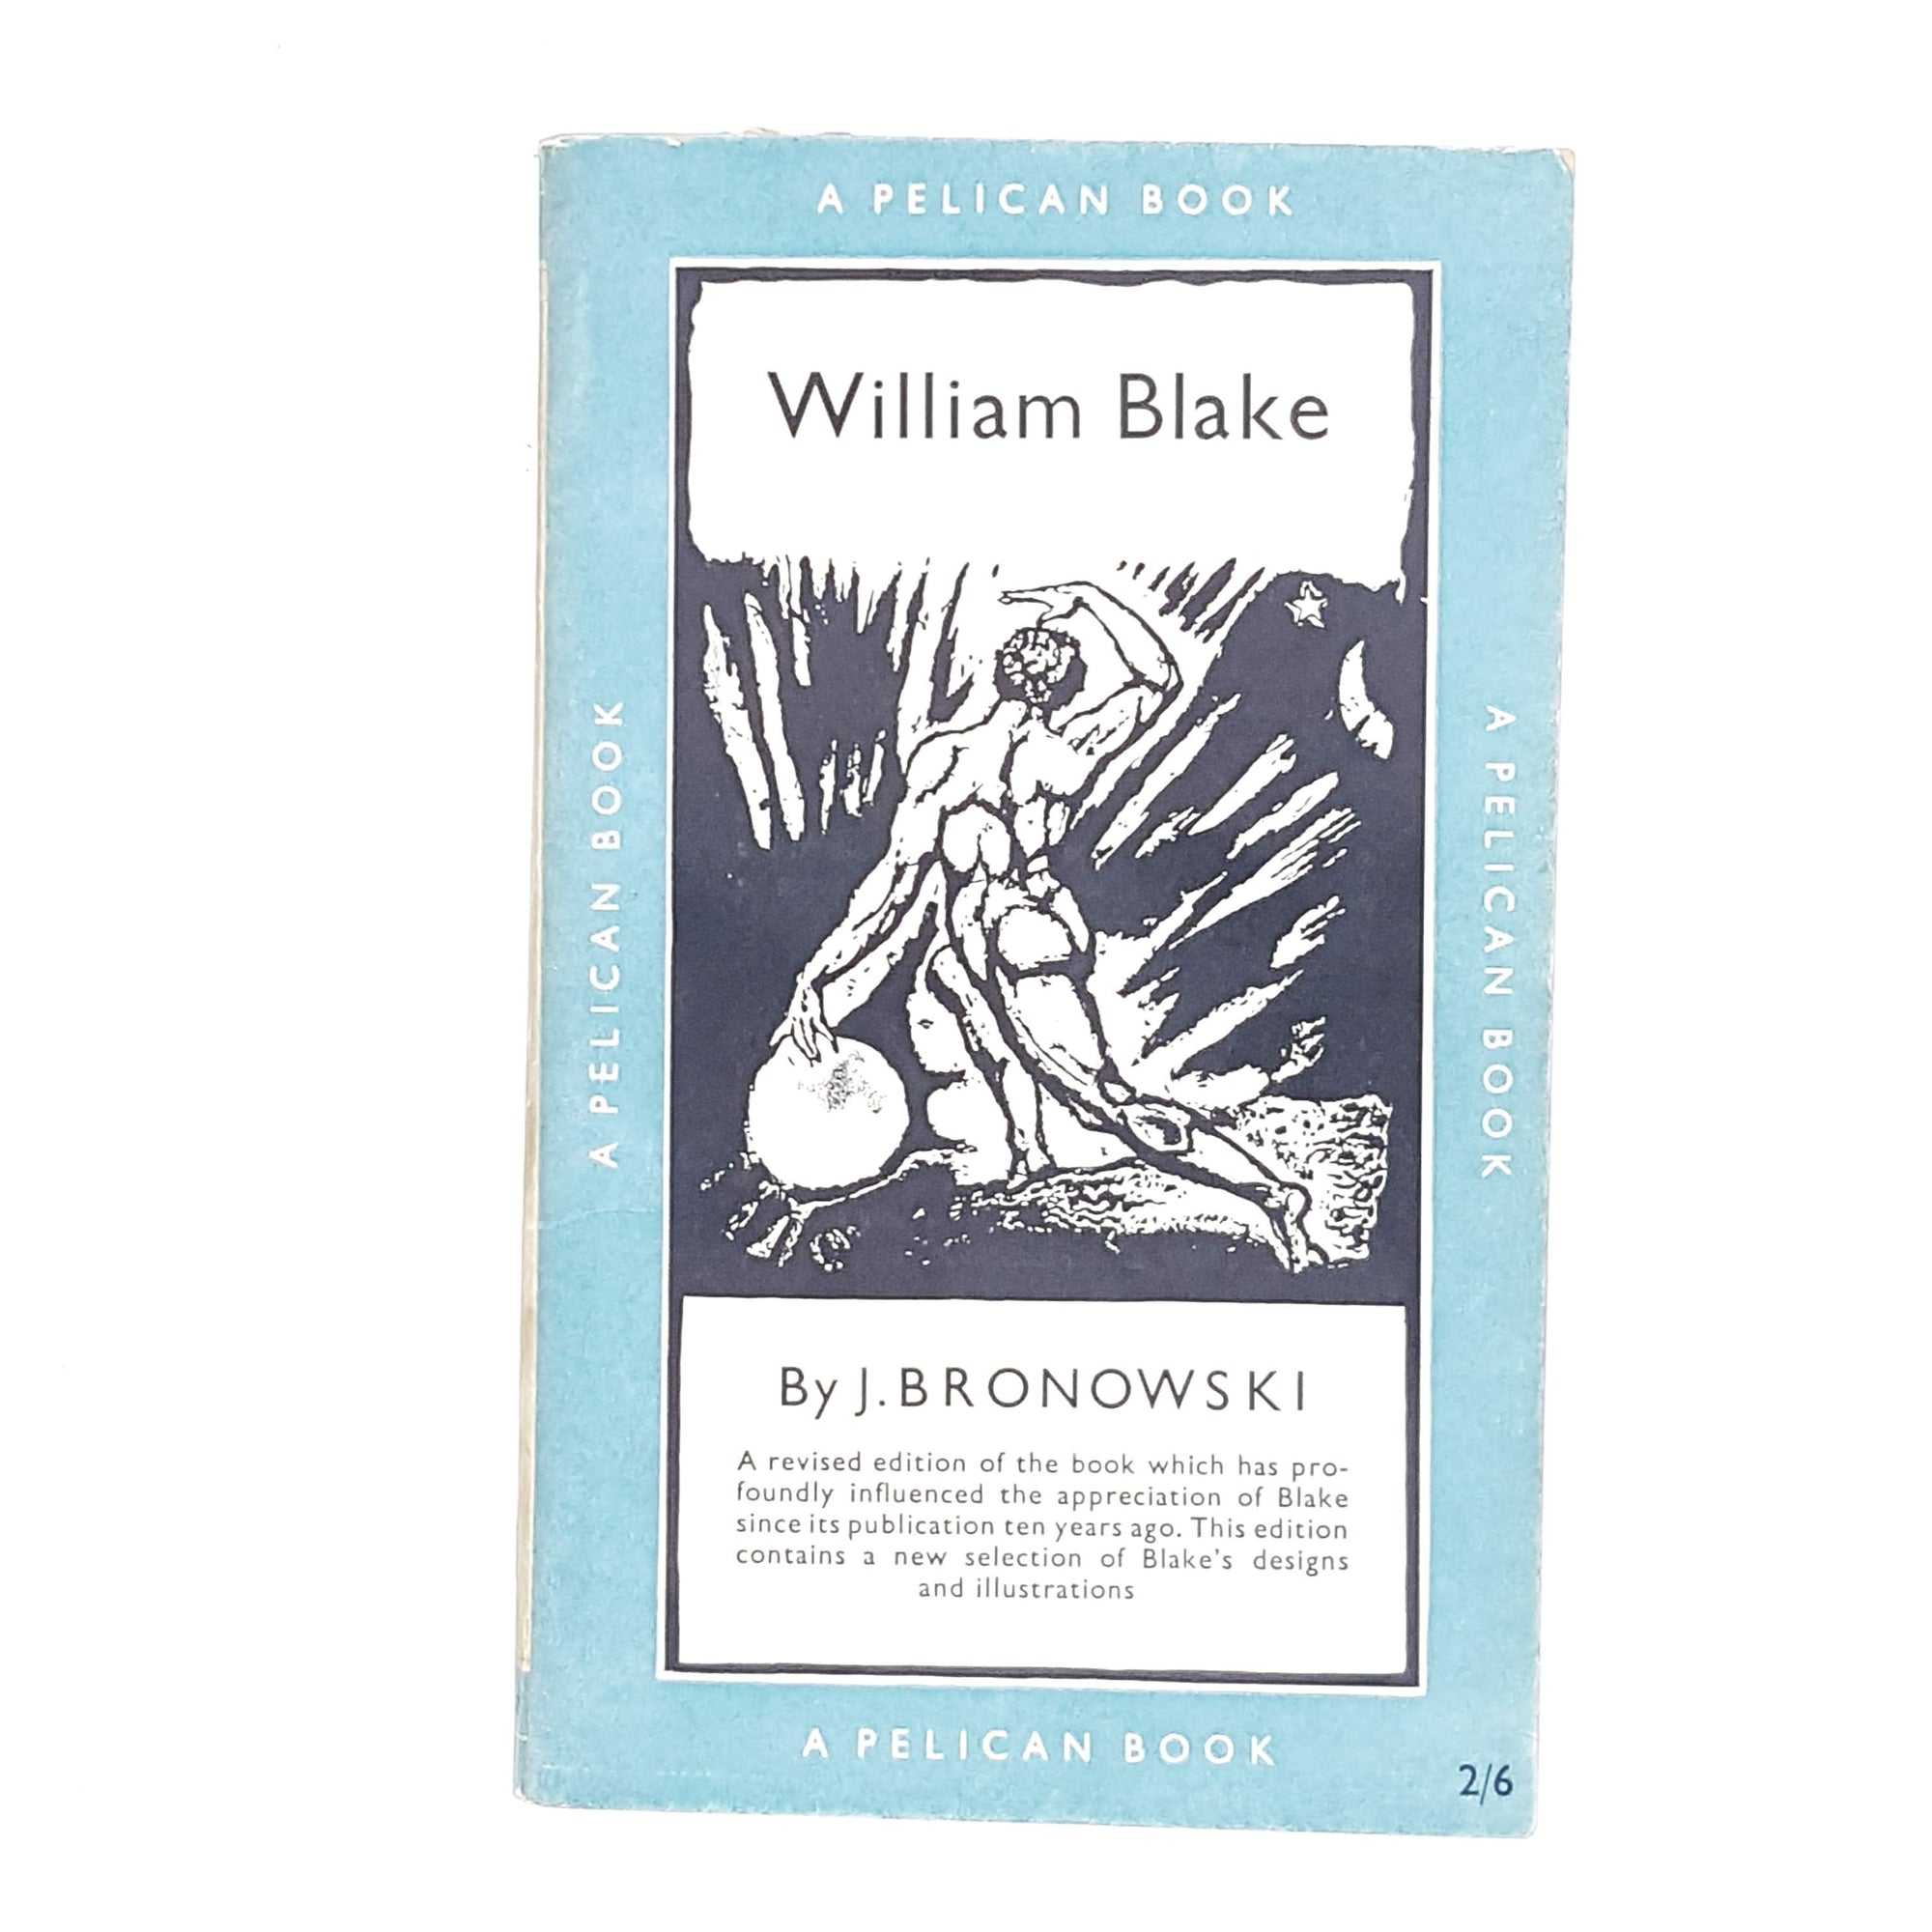 William Blake by J. Bronowski 1954